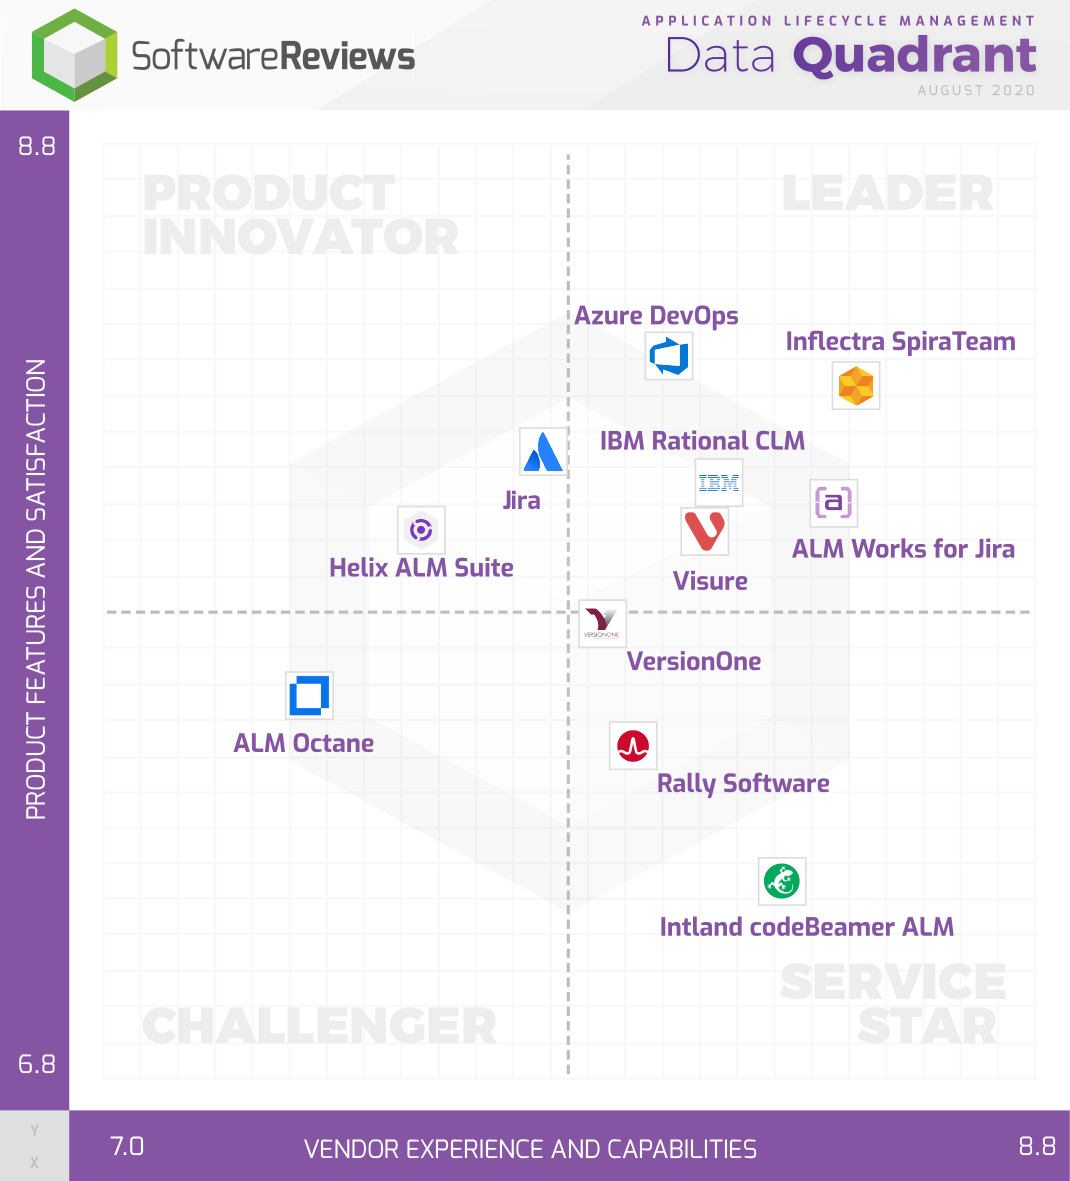 Application Lifecycle Management Data Quadrant